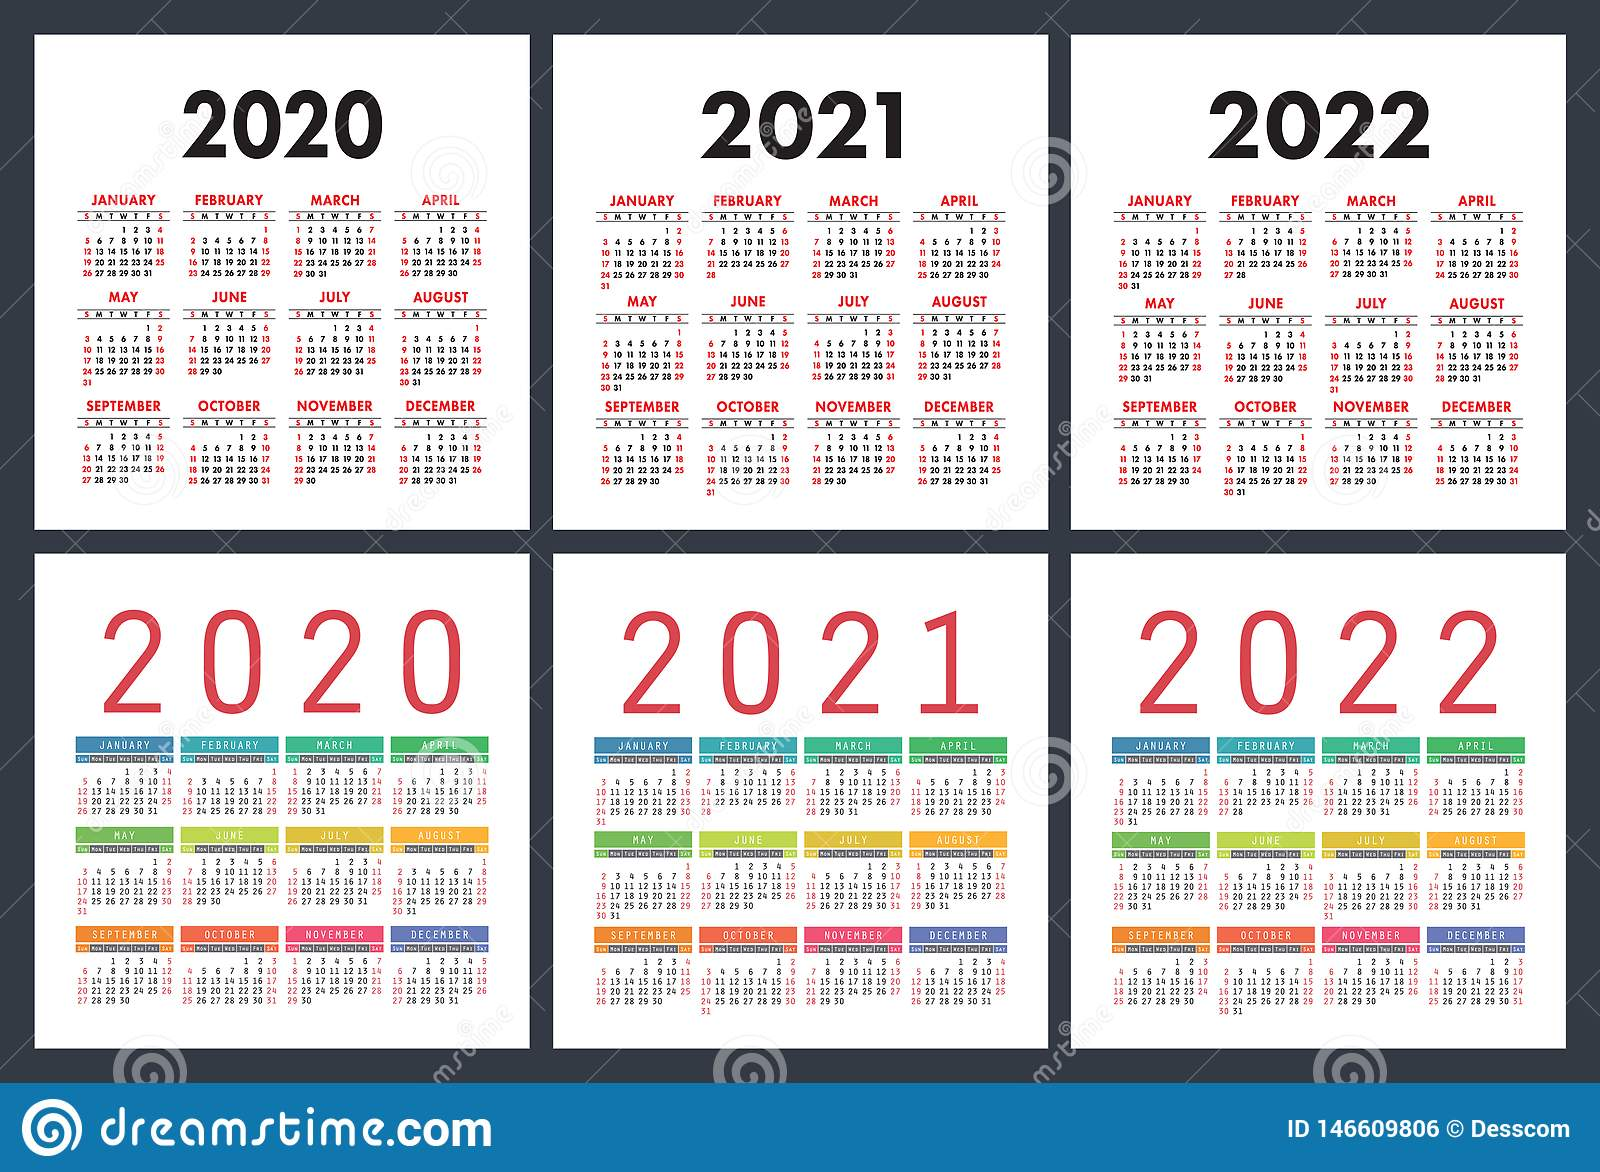 Semaines Calendrier 2020.Calendrier 2020 2021 2022 Ans Ensemble Color Calendrier